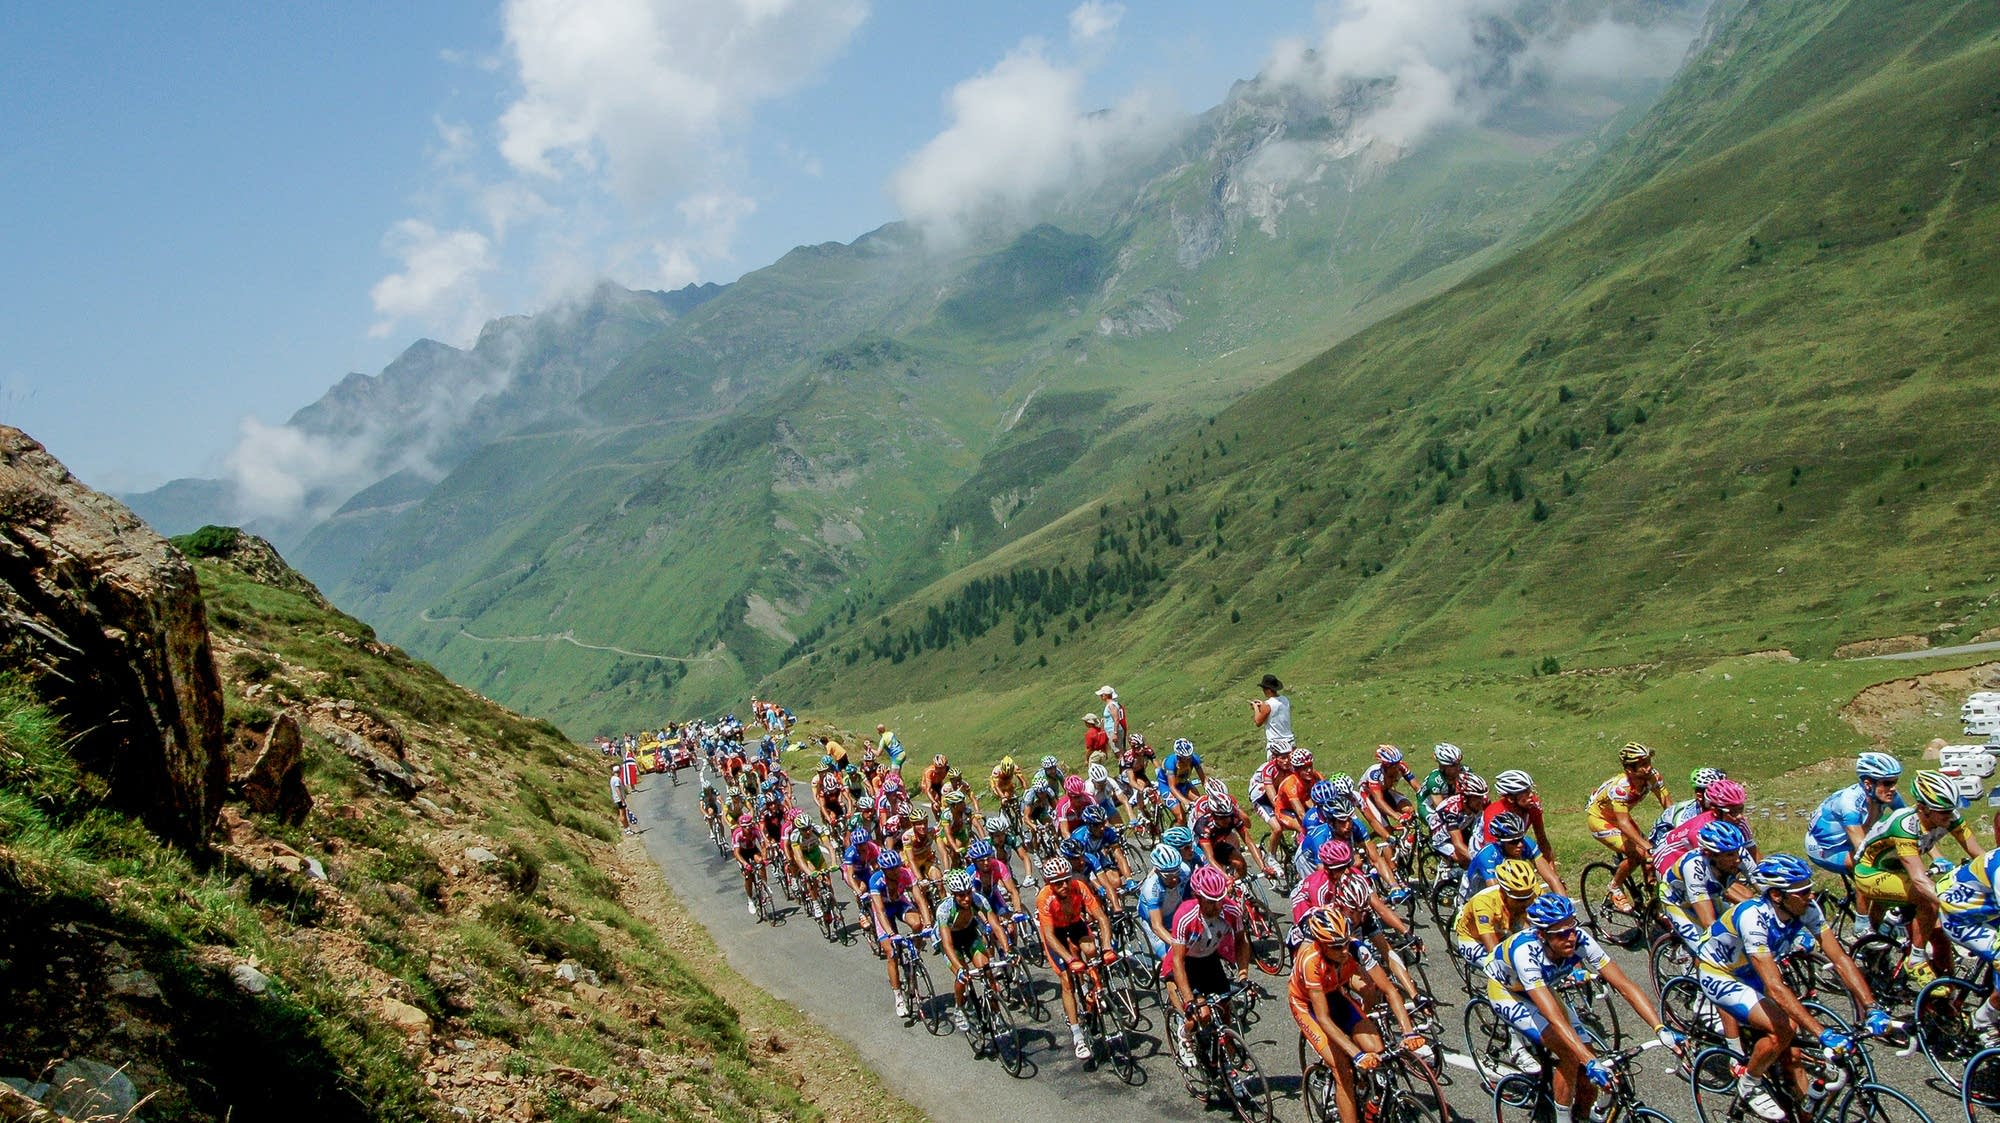 Photos In Chasing Tour De France A Photographer Finds Her Voice Mpr News